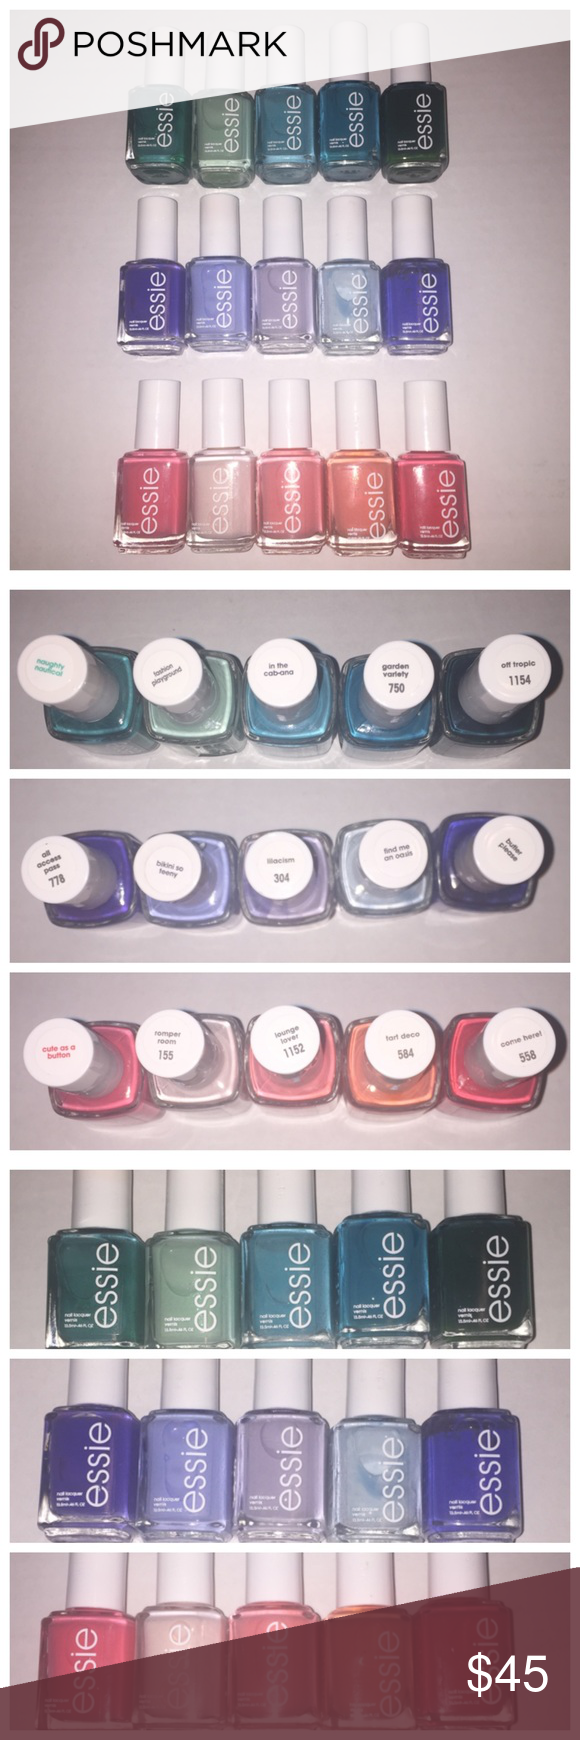 15 brand new Essie nail polishes 15 Brand New Essie Nail-polishes  Never used. Never opened.   Naughty Nautical, Fashion Playground, In the Ca-Bana, Garden Variety, Off Tropic  All Access Pass, Bikini SoTeeny, Lilacism, Find Me An Oasis, Butler Please  Cute As A Button, Romper Room, Lounge Lover, Tart Deco, Come Here! Essie Accessories